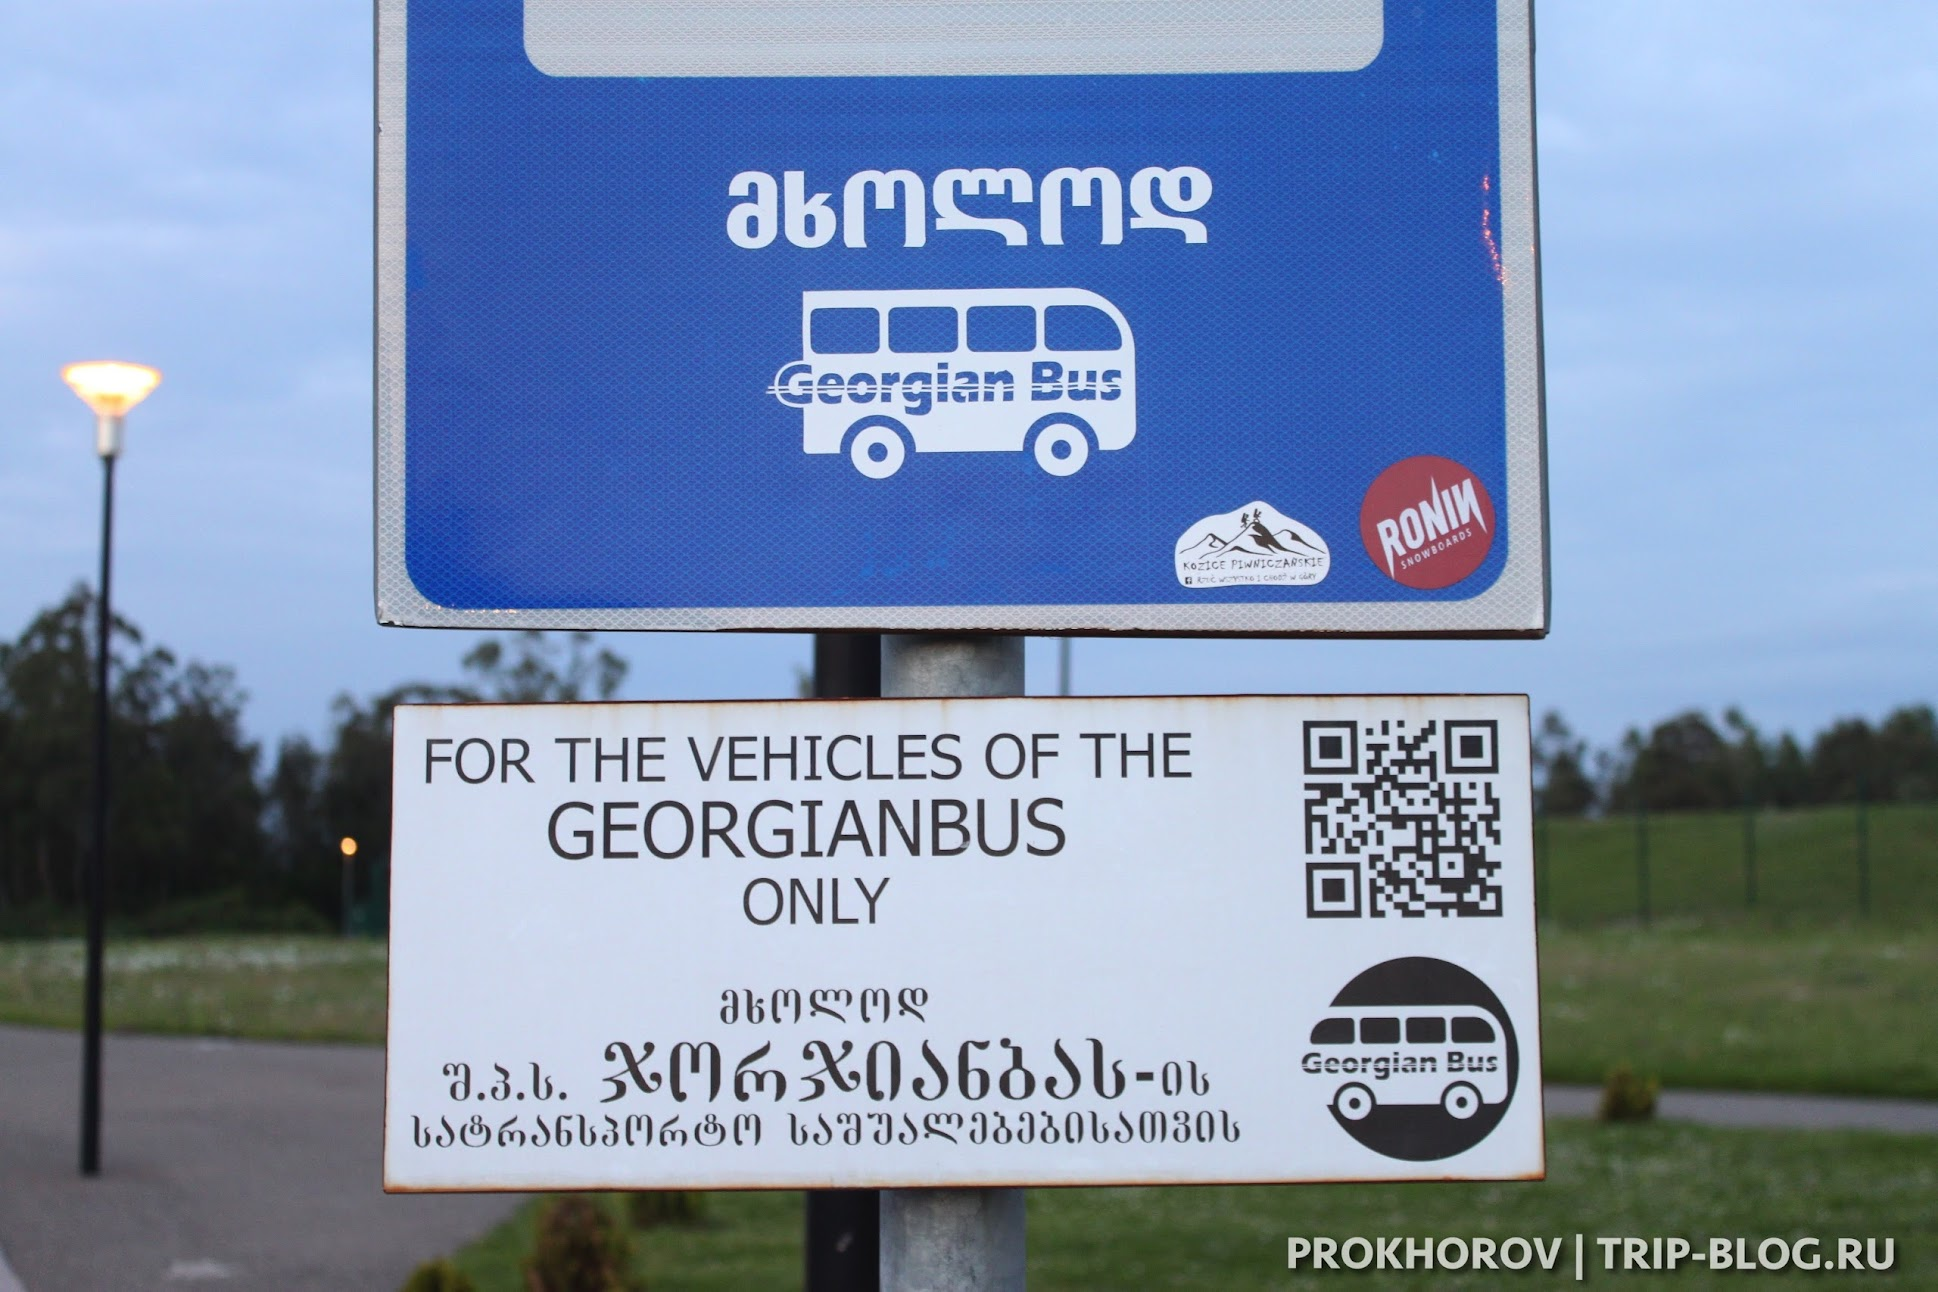 Georgian Bus